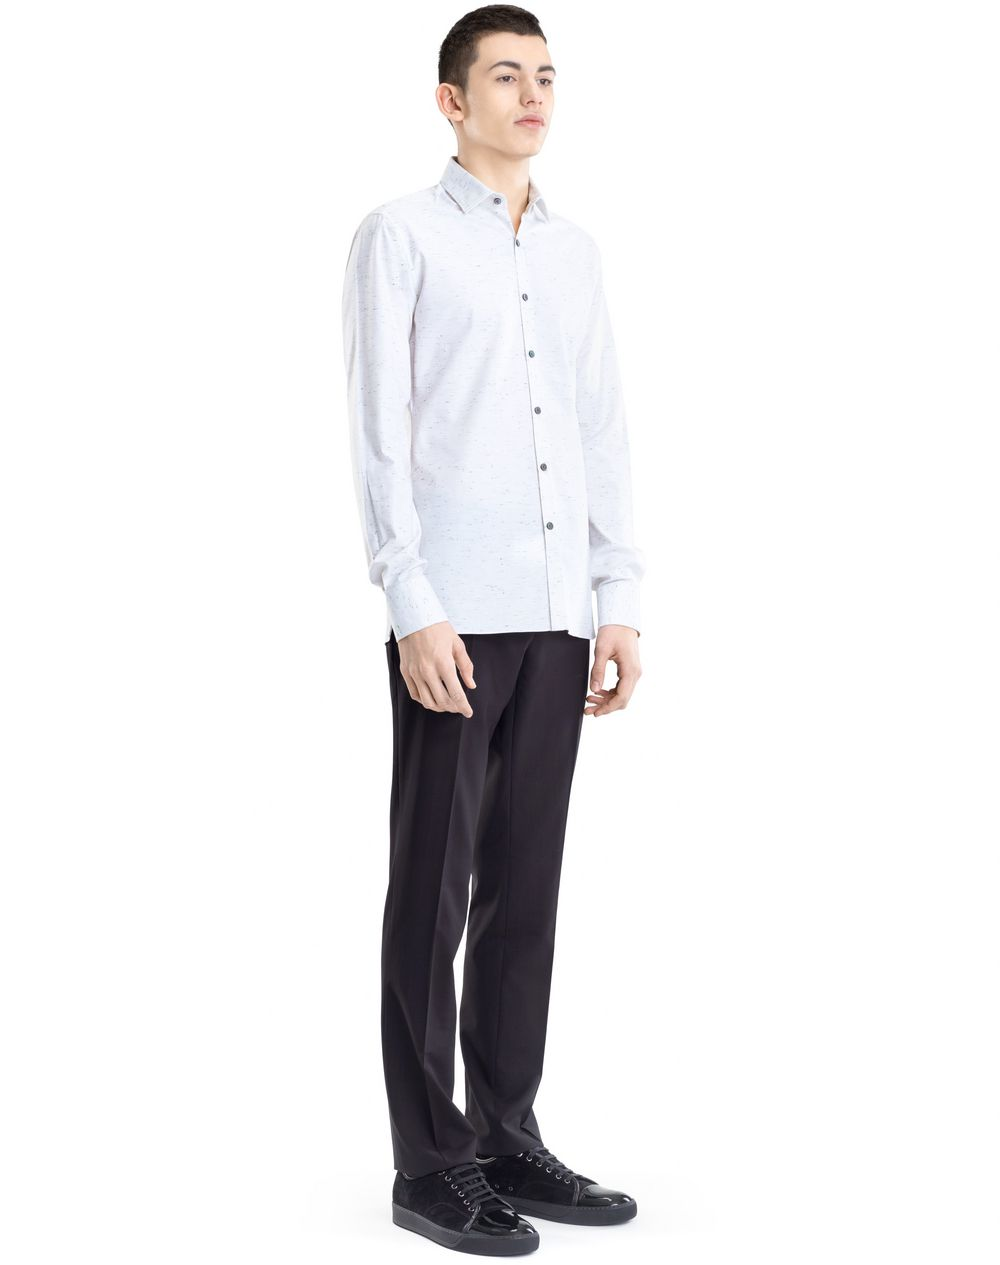 OXFORD SHIRT  - Lanvin